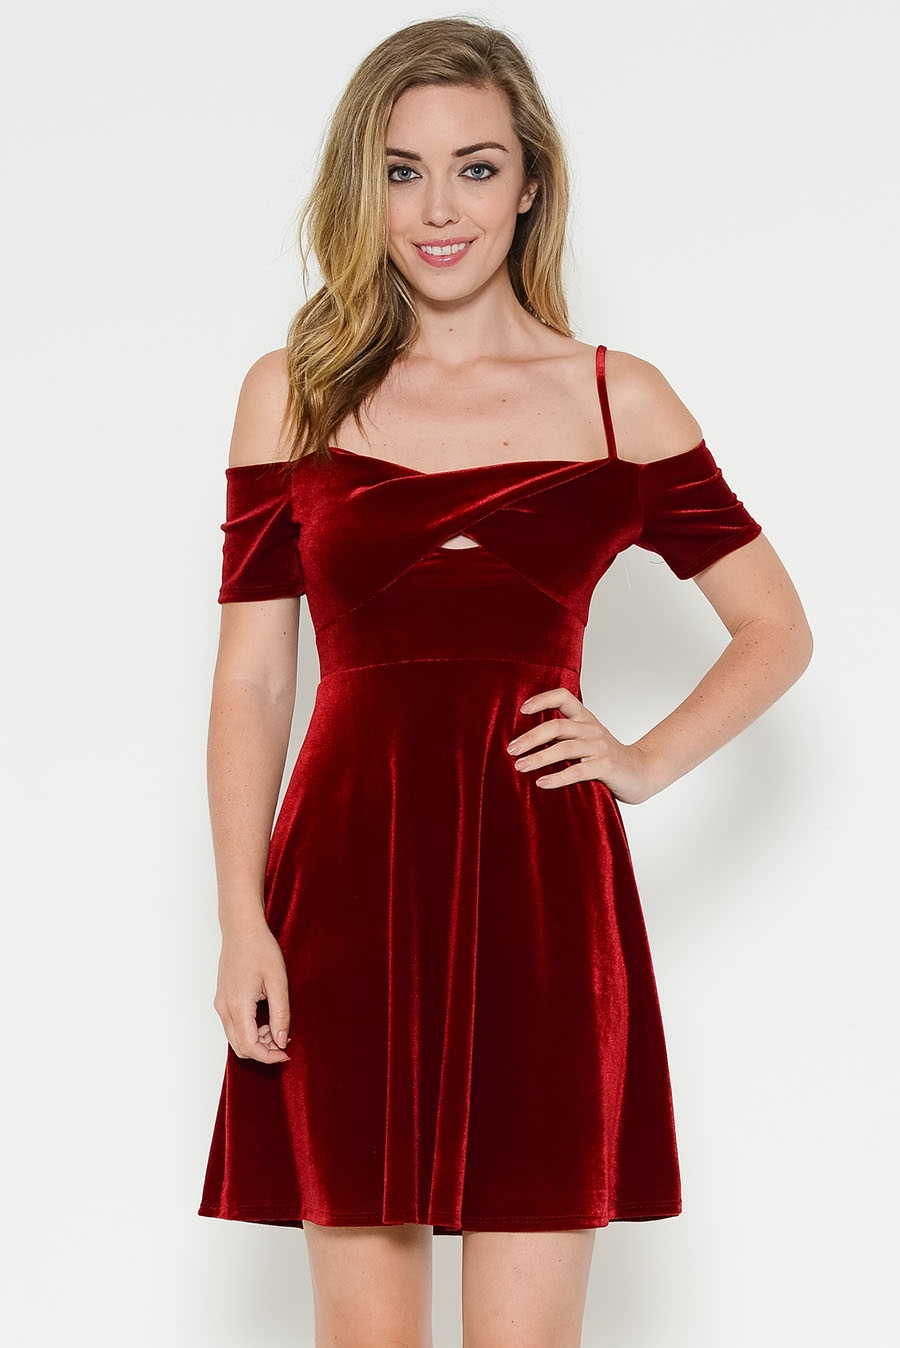 VELVET OFF SHOULDER FLARE DRES - orangeshine.com